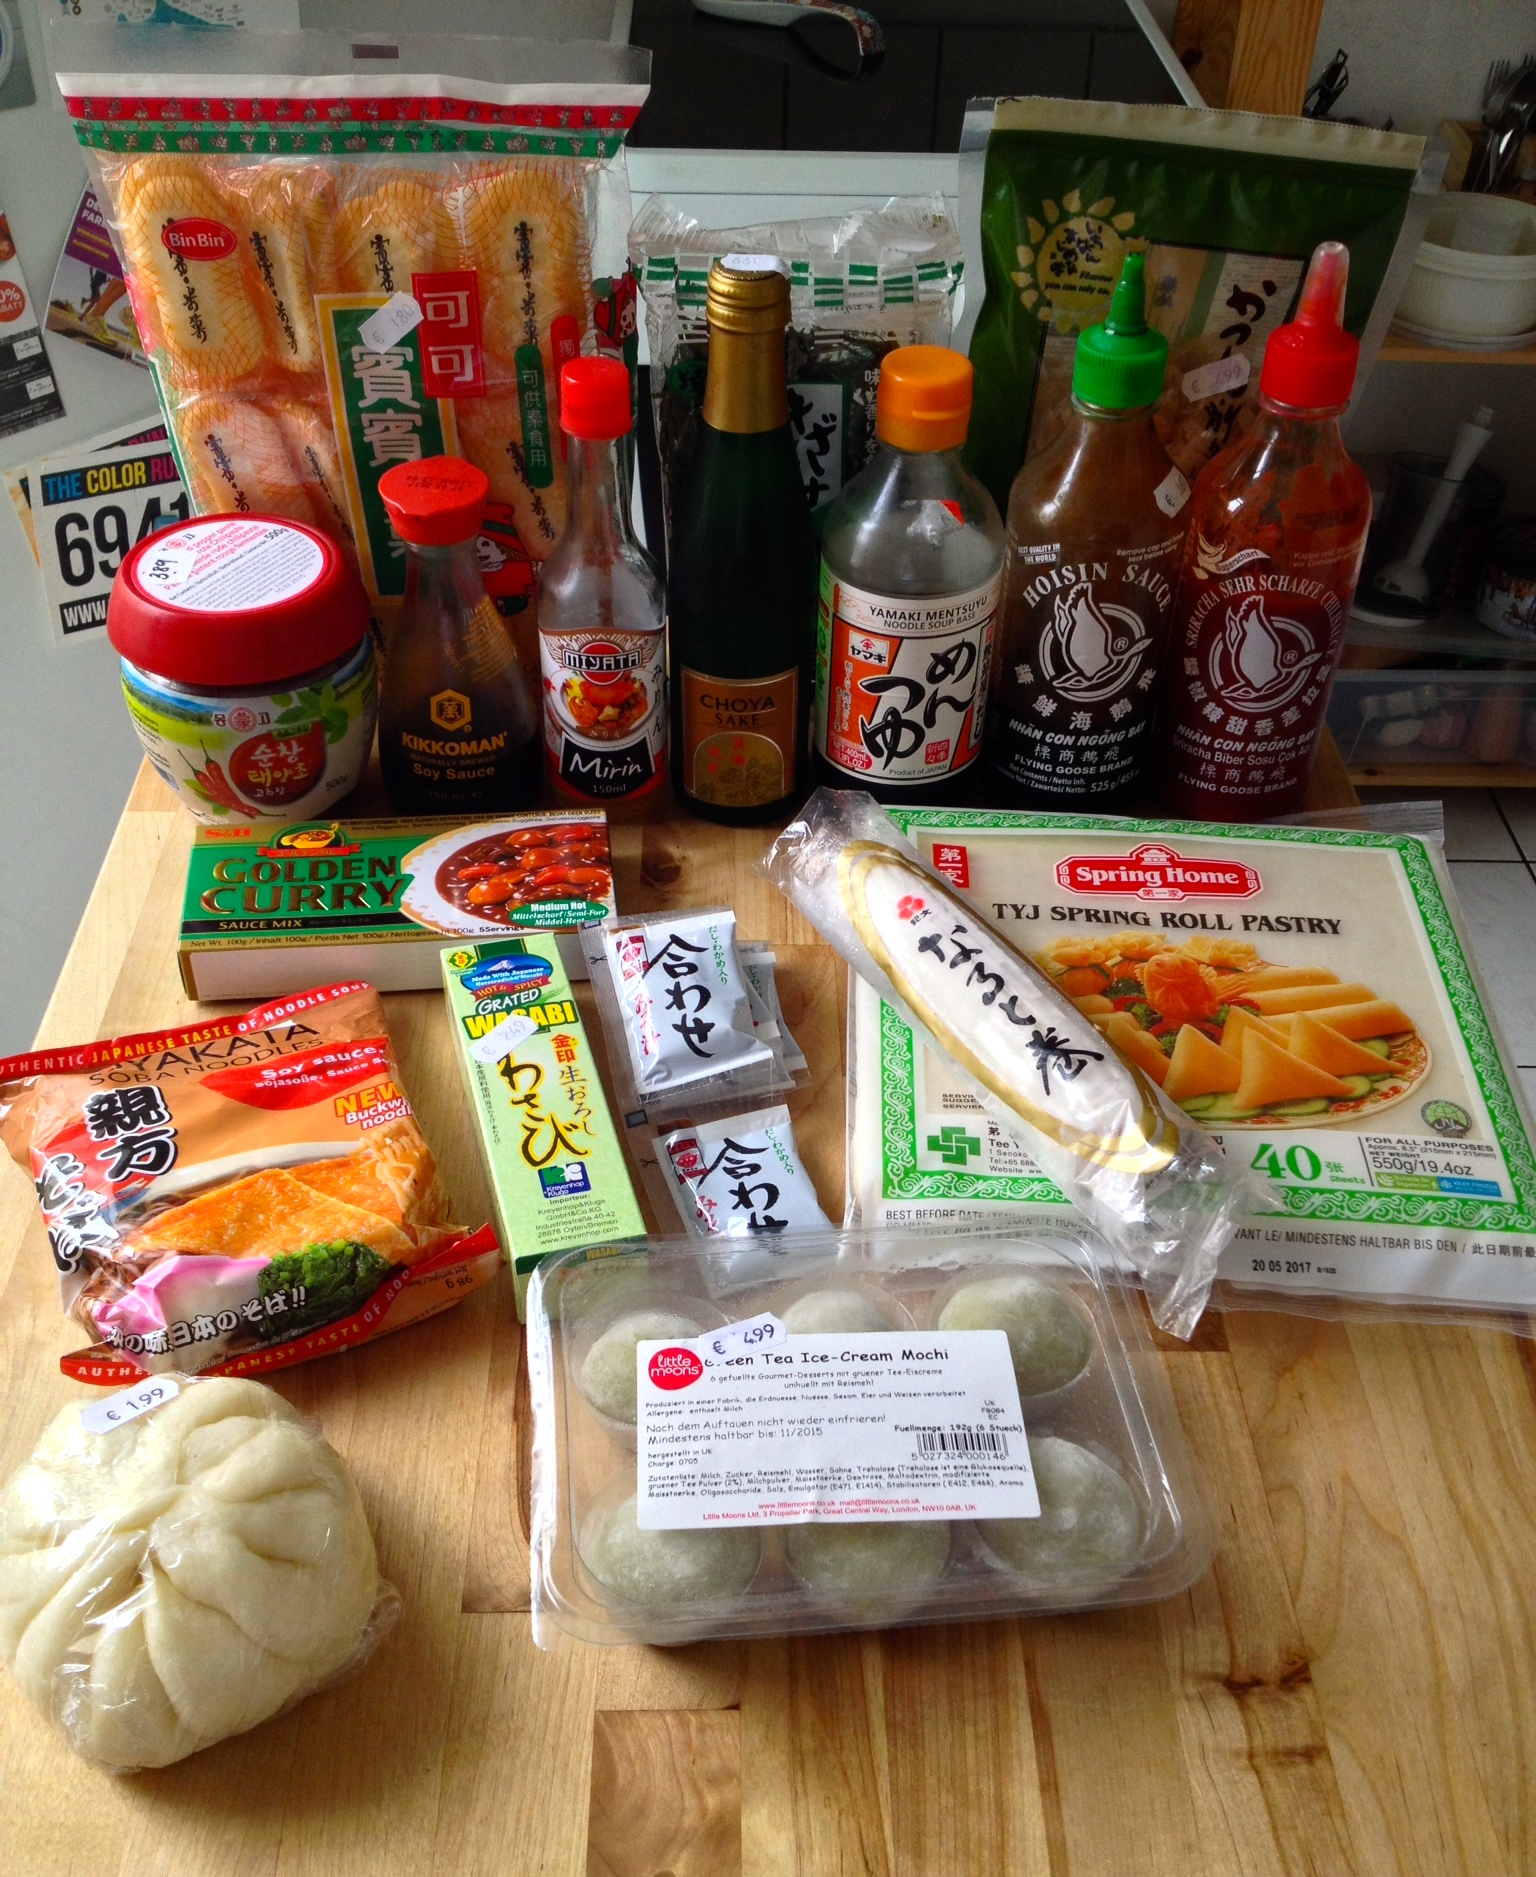 Ingredients from my local Asian market